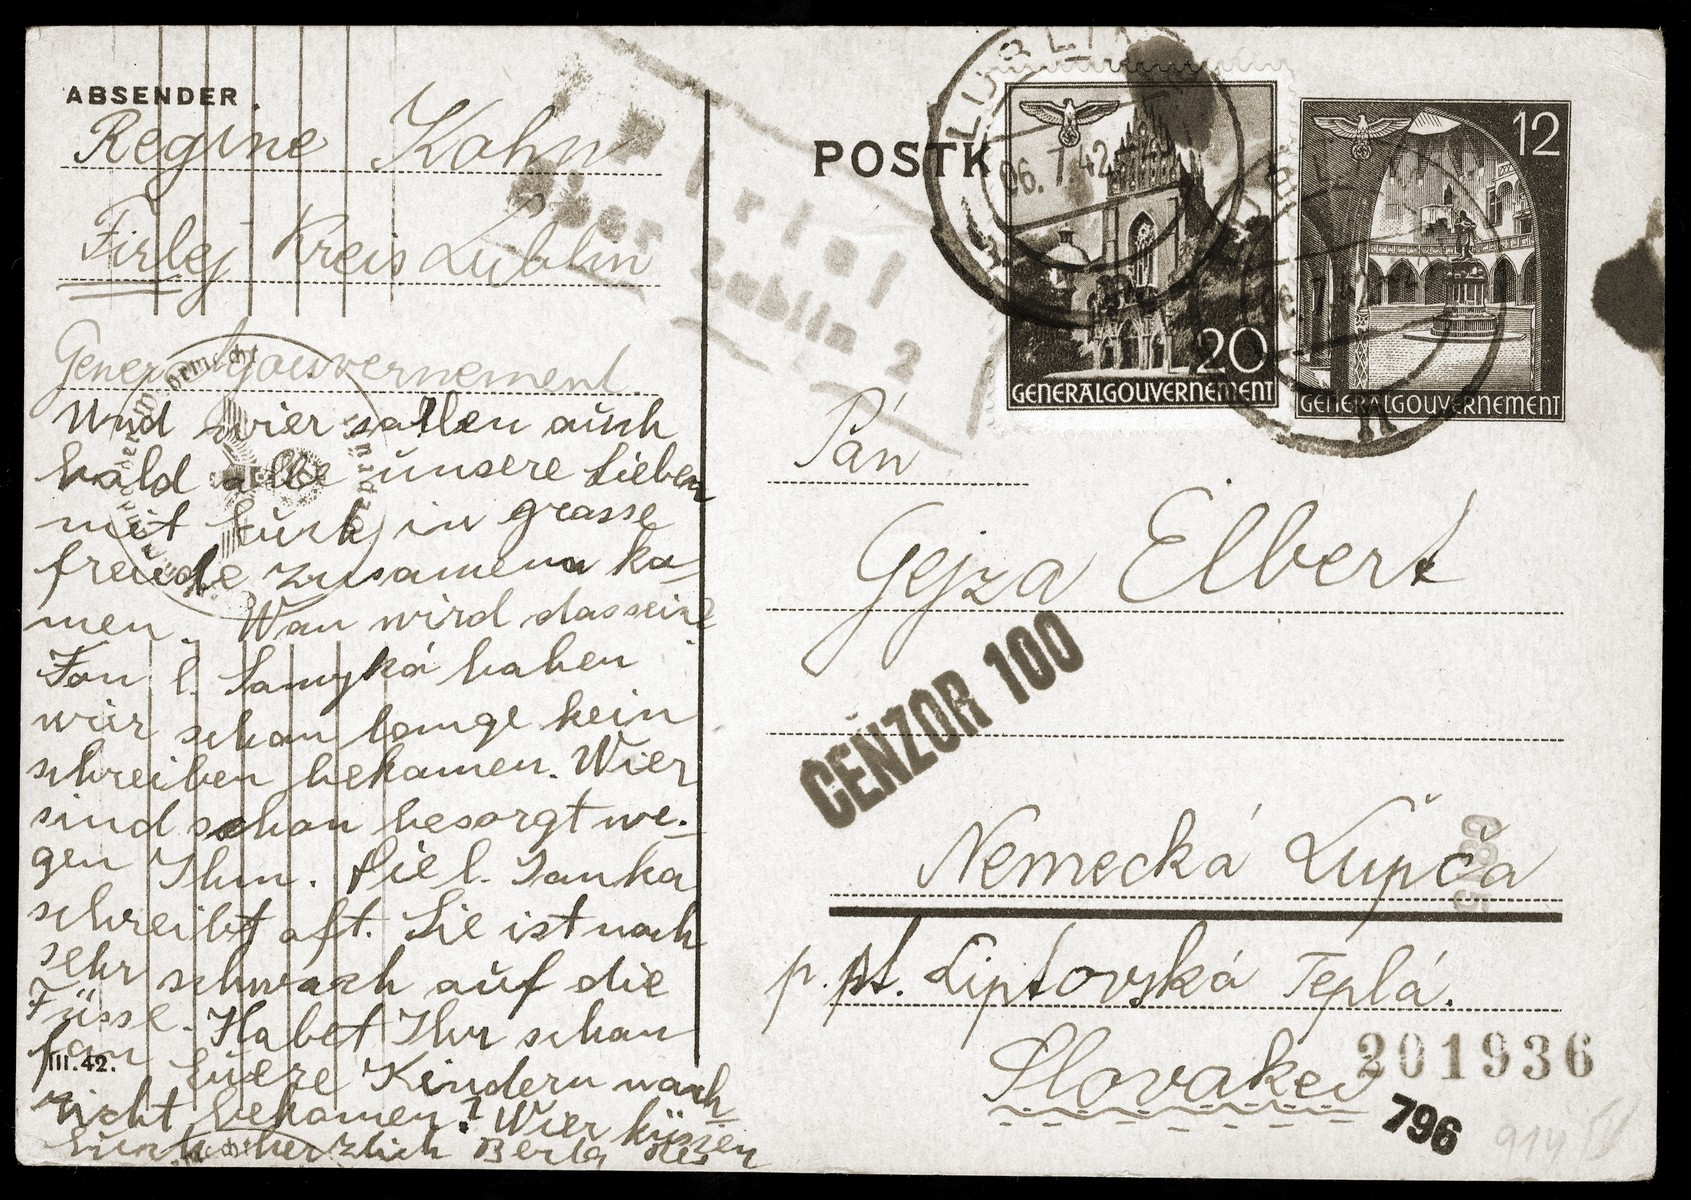 A postcard sent by Regina Kohn from a ghetto or labor camp in Firej, Poland to Gejza Elbert in Nemecka Lupca.